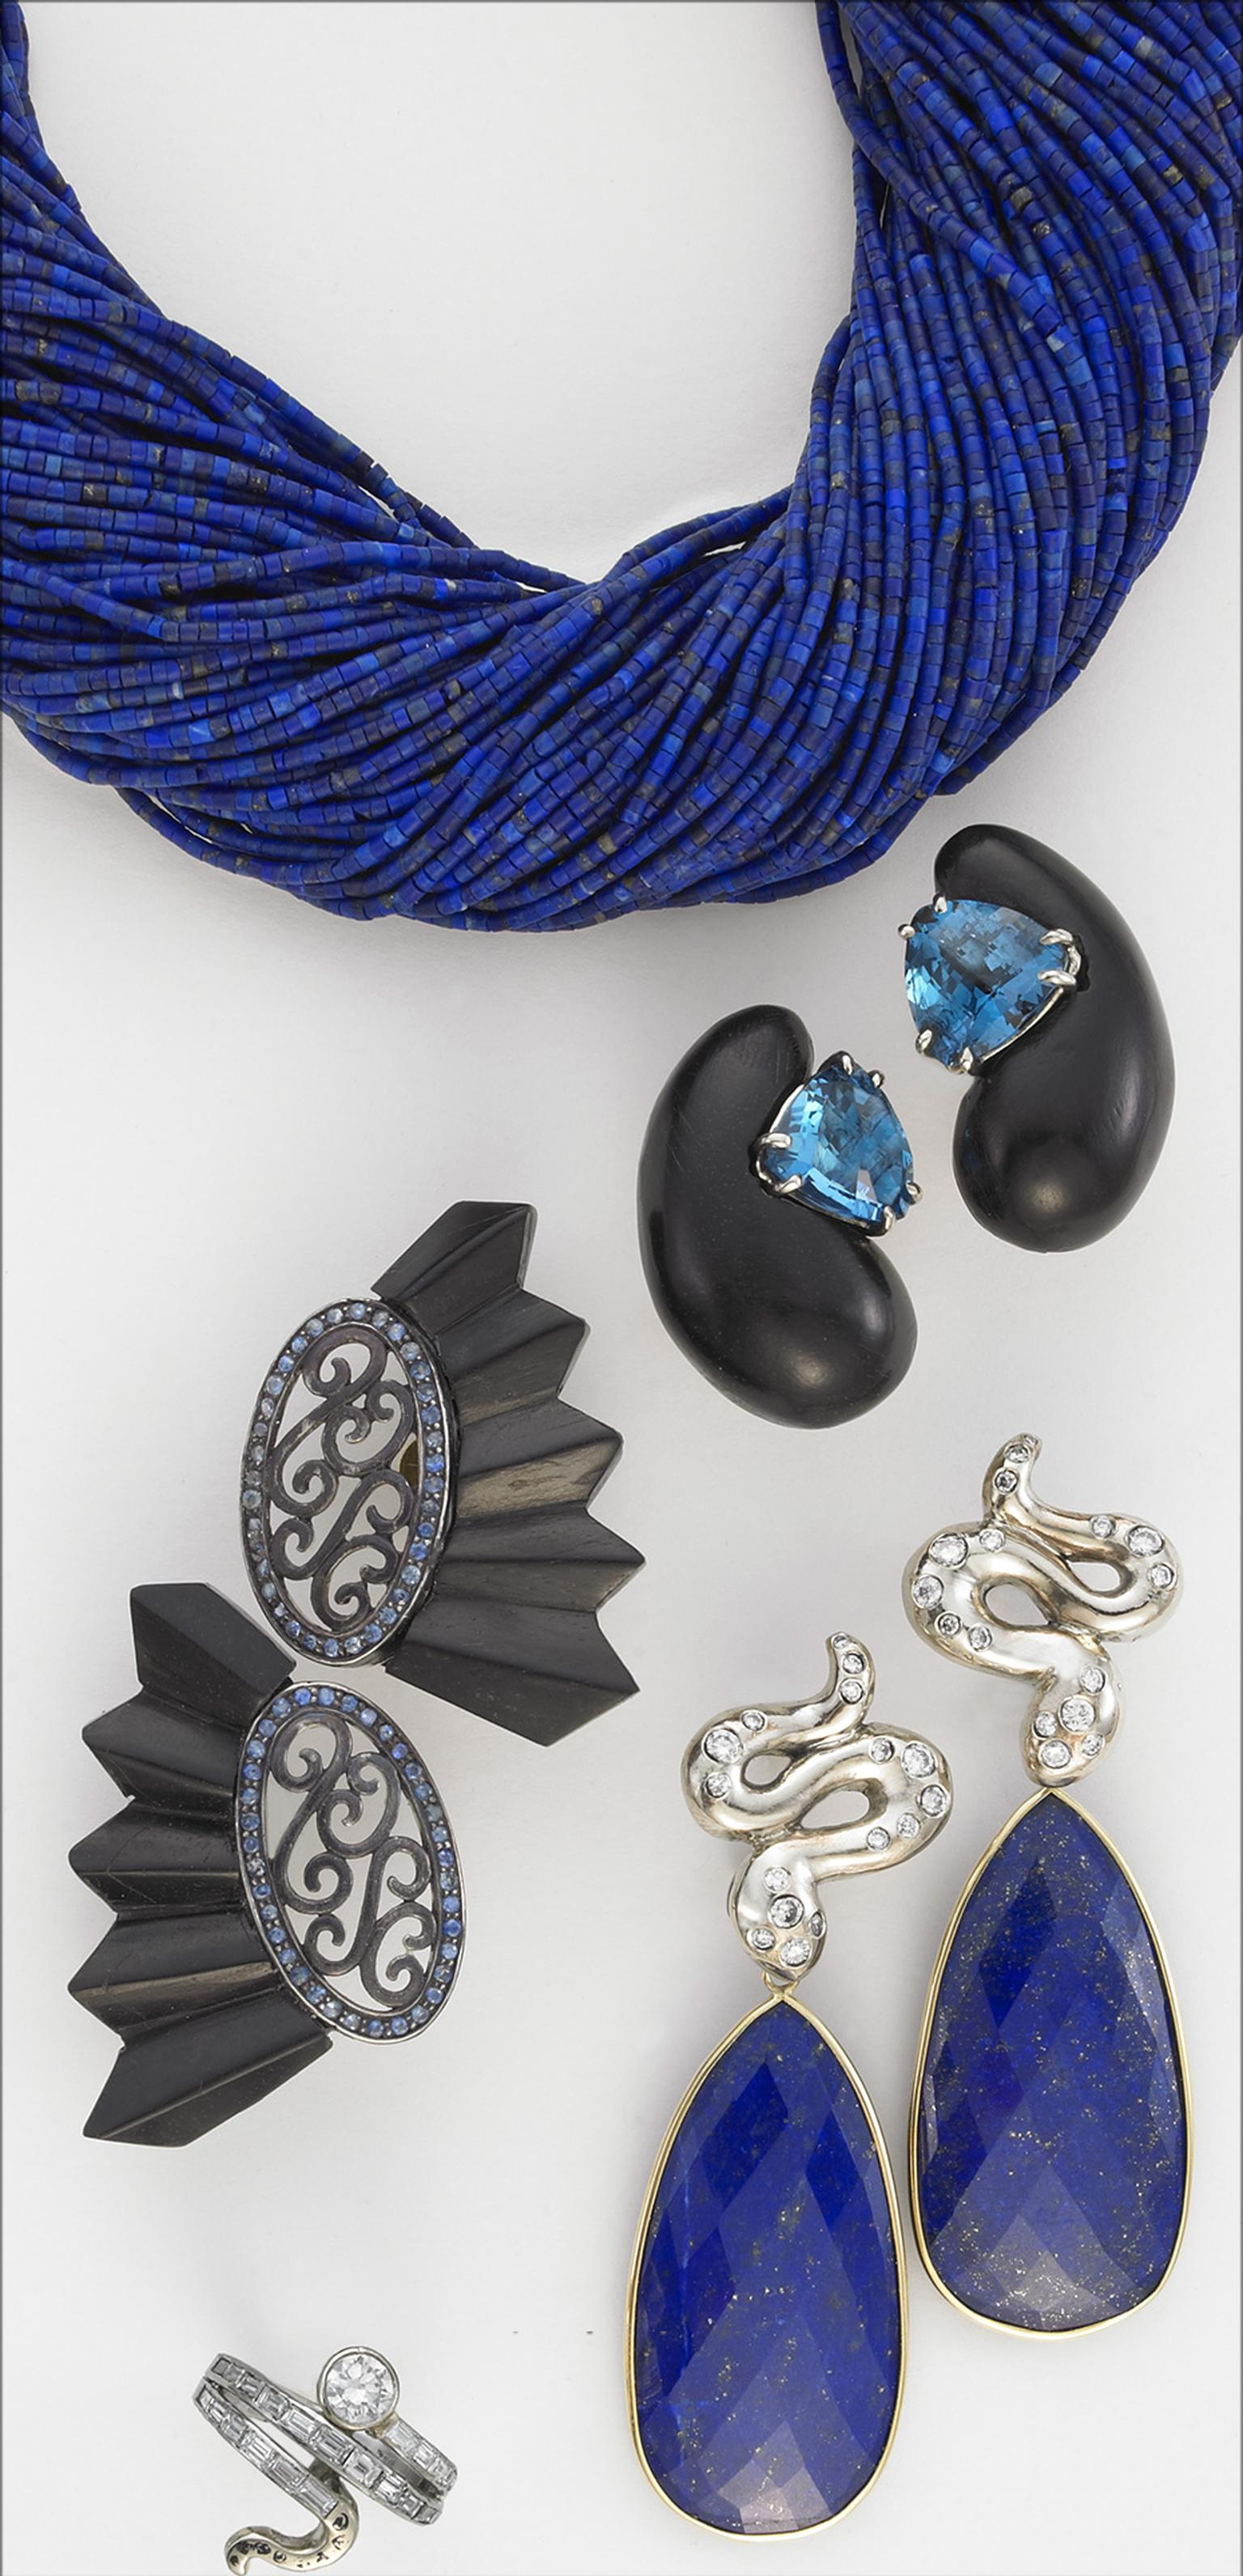 Sorab & Roshi lapis bead necklace, ebony wood Cashew earrings with blue topaz, ebony wood Fan earrings with sapphires, diamond spotted Snake earrings with lapis drops and diamond Snake pinky ring